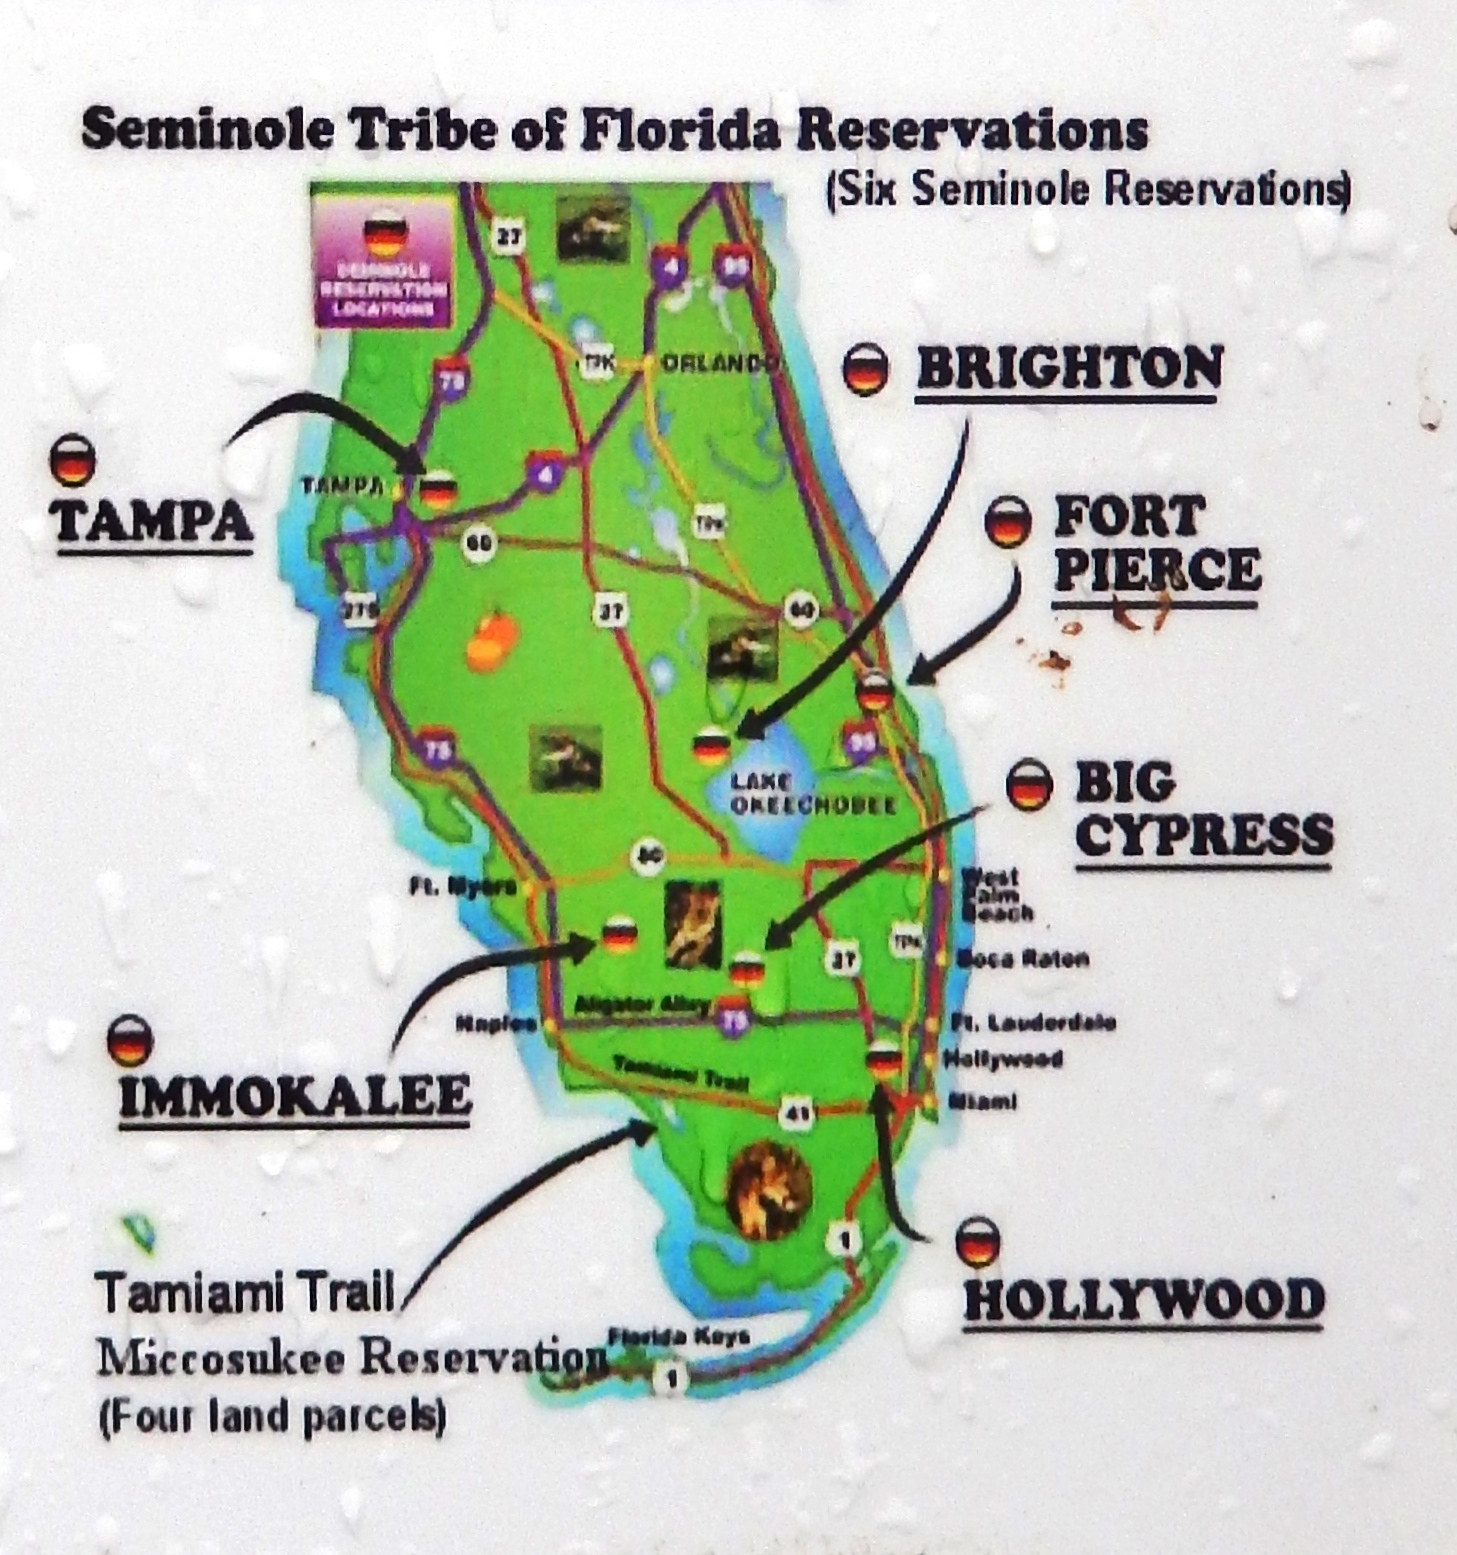 Marker detail: Seminole Tribe of Florida Reservations